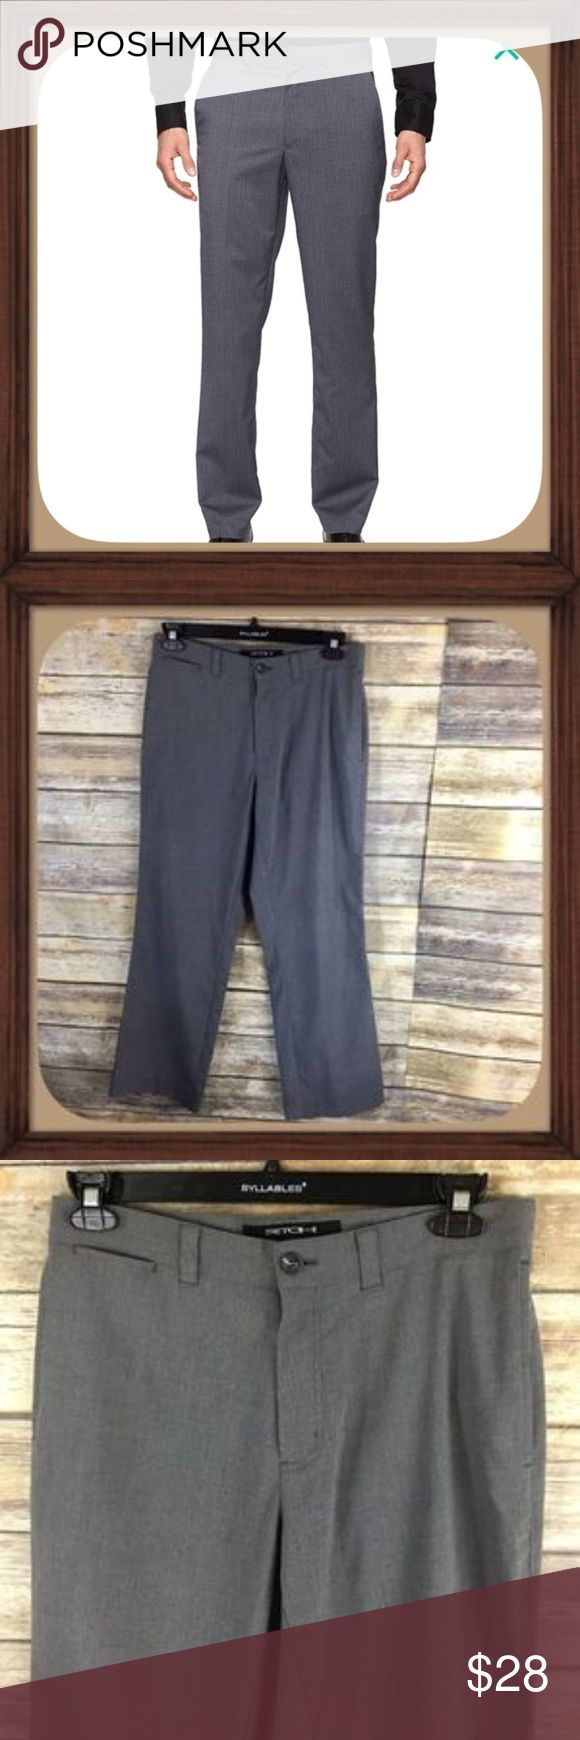 Kenneth Cole NY Gray Stretch Dress Pants EUC Kenneth Cole Men's Gray Stretch Dress Pants. Size 31/30. In excellent used condition. Kenneth Cole Pants Dress